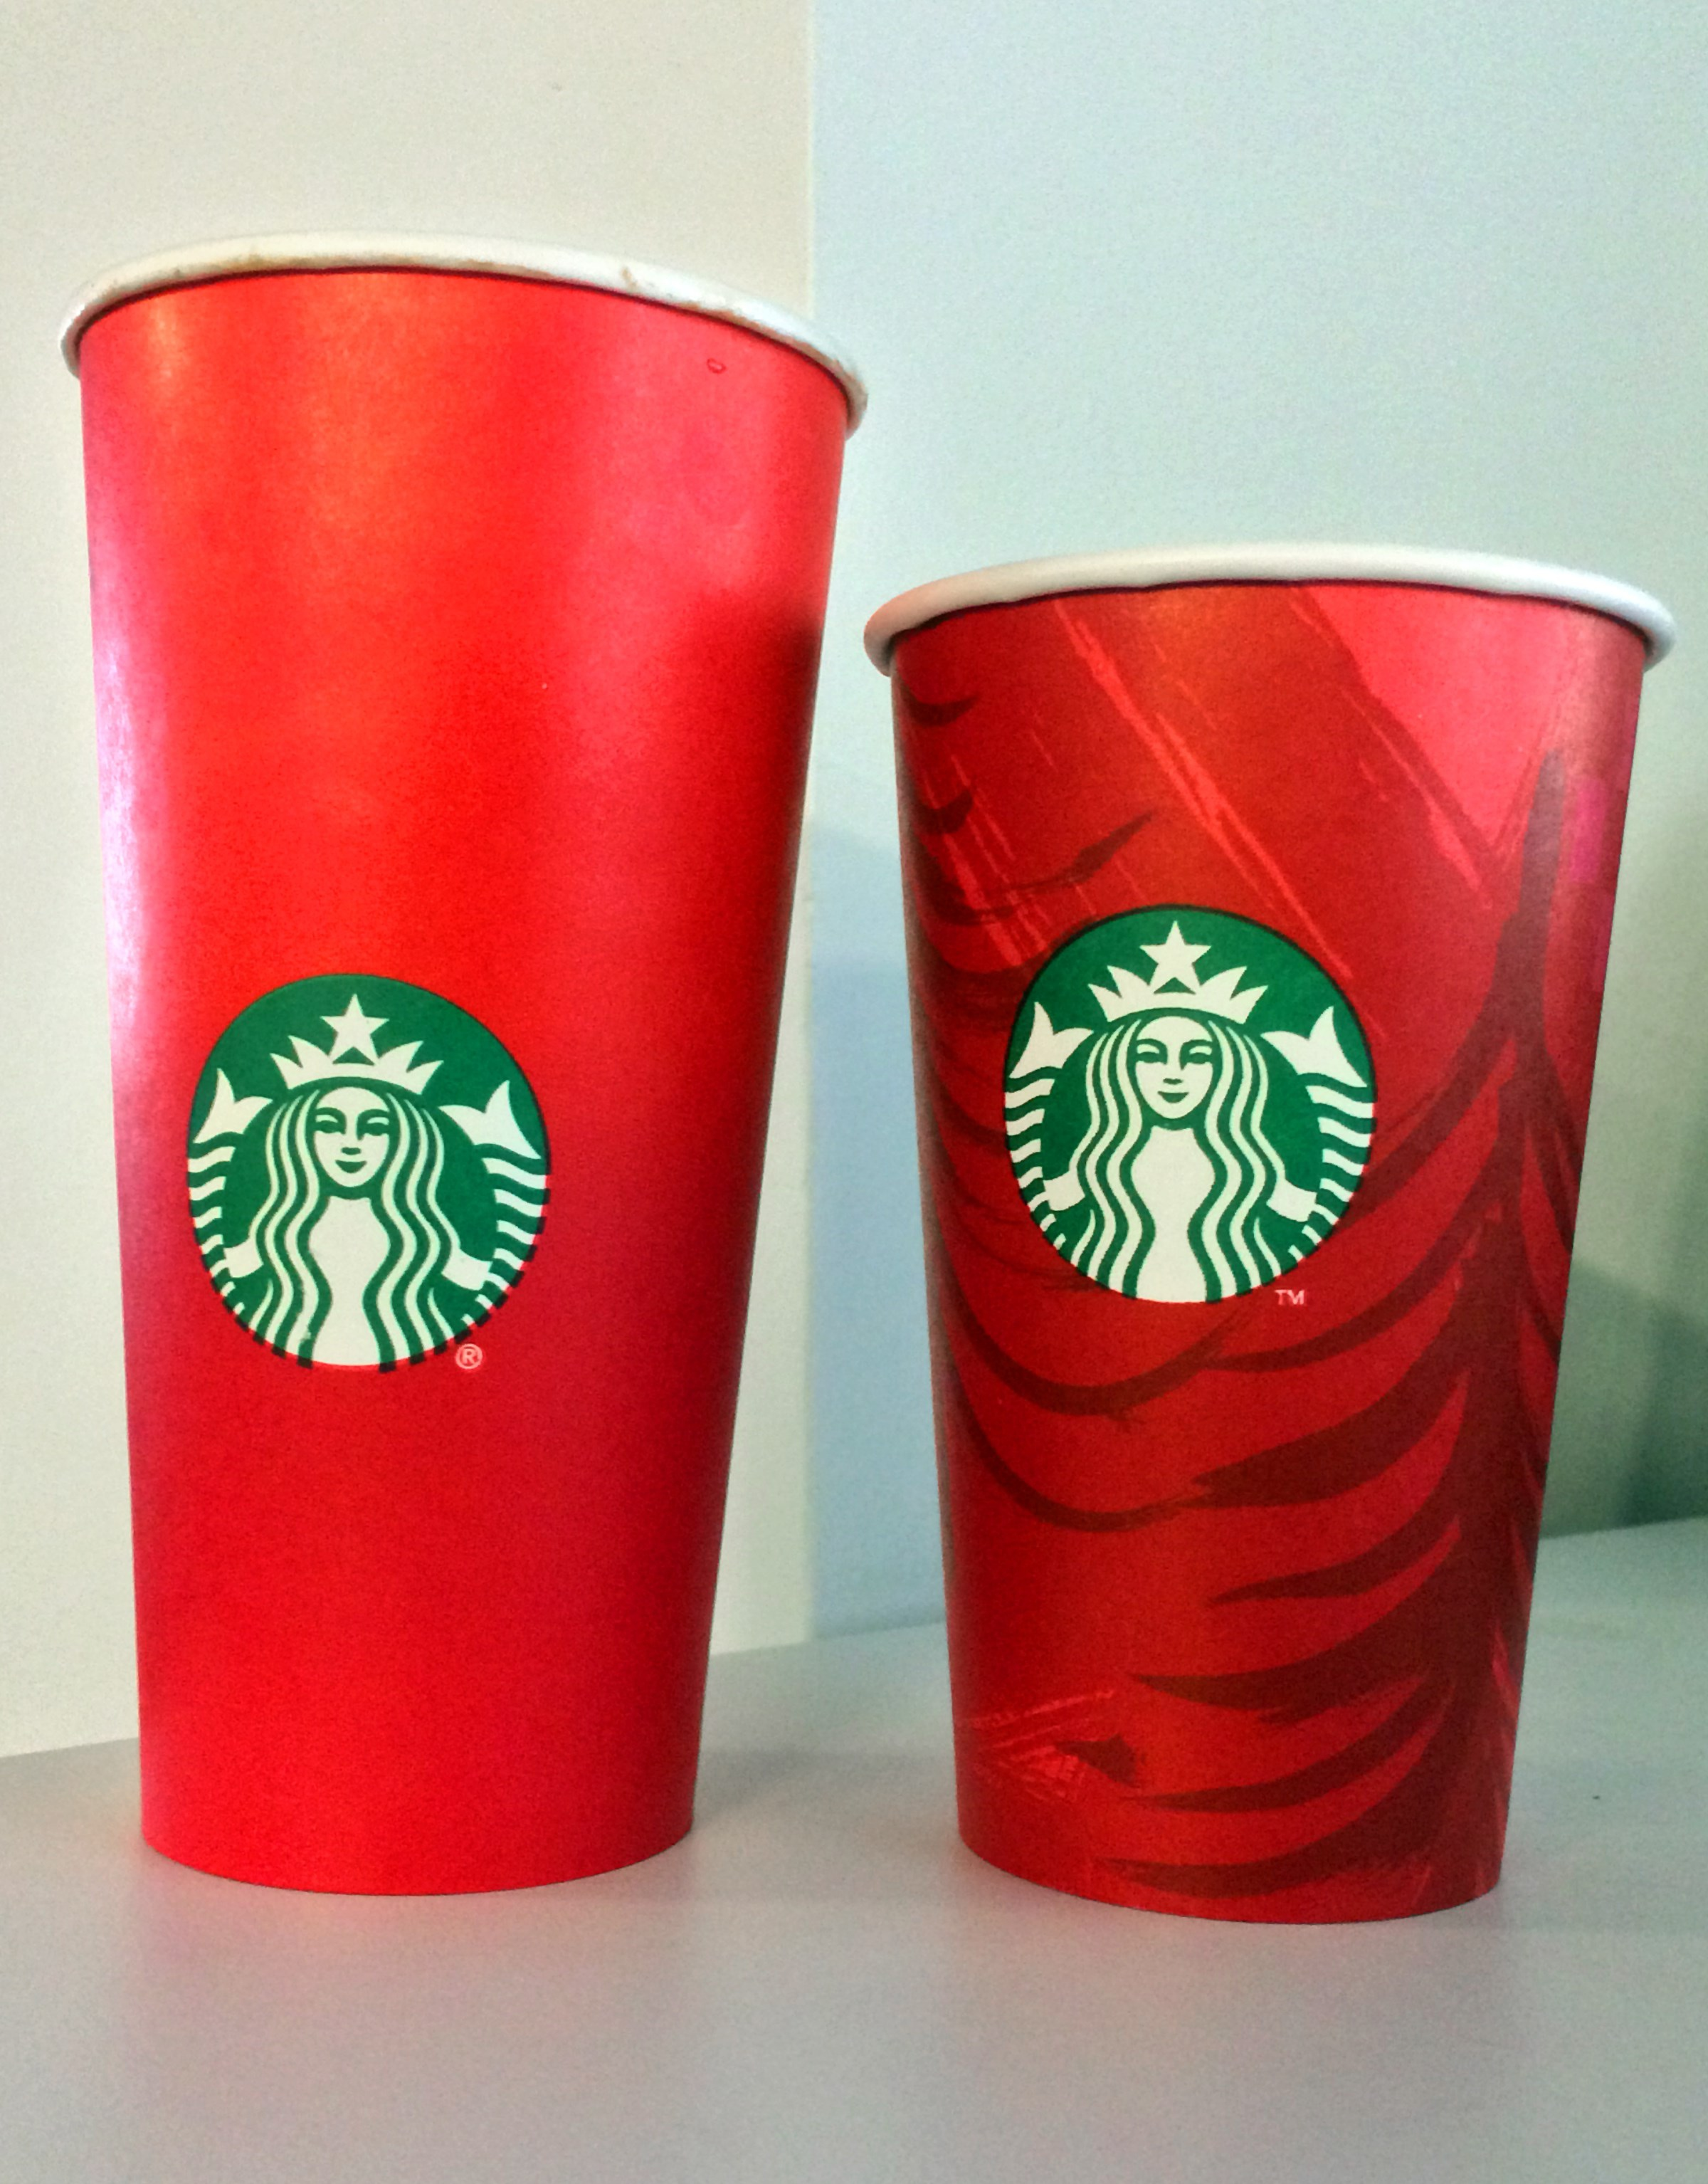 starbucks s red cup controversy explained  here s what the starbucks red cup looks like now and what it looked like in 2014